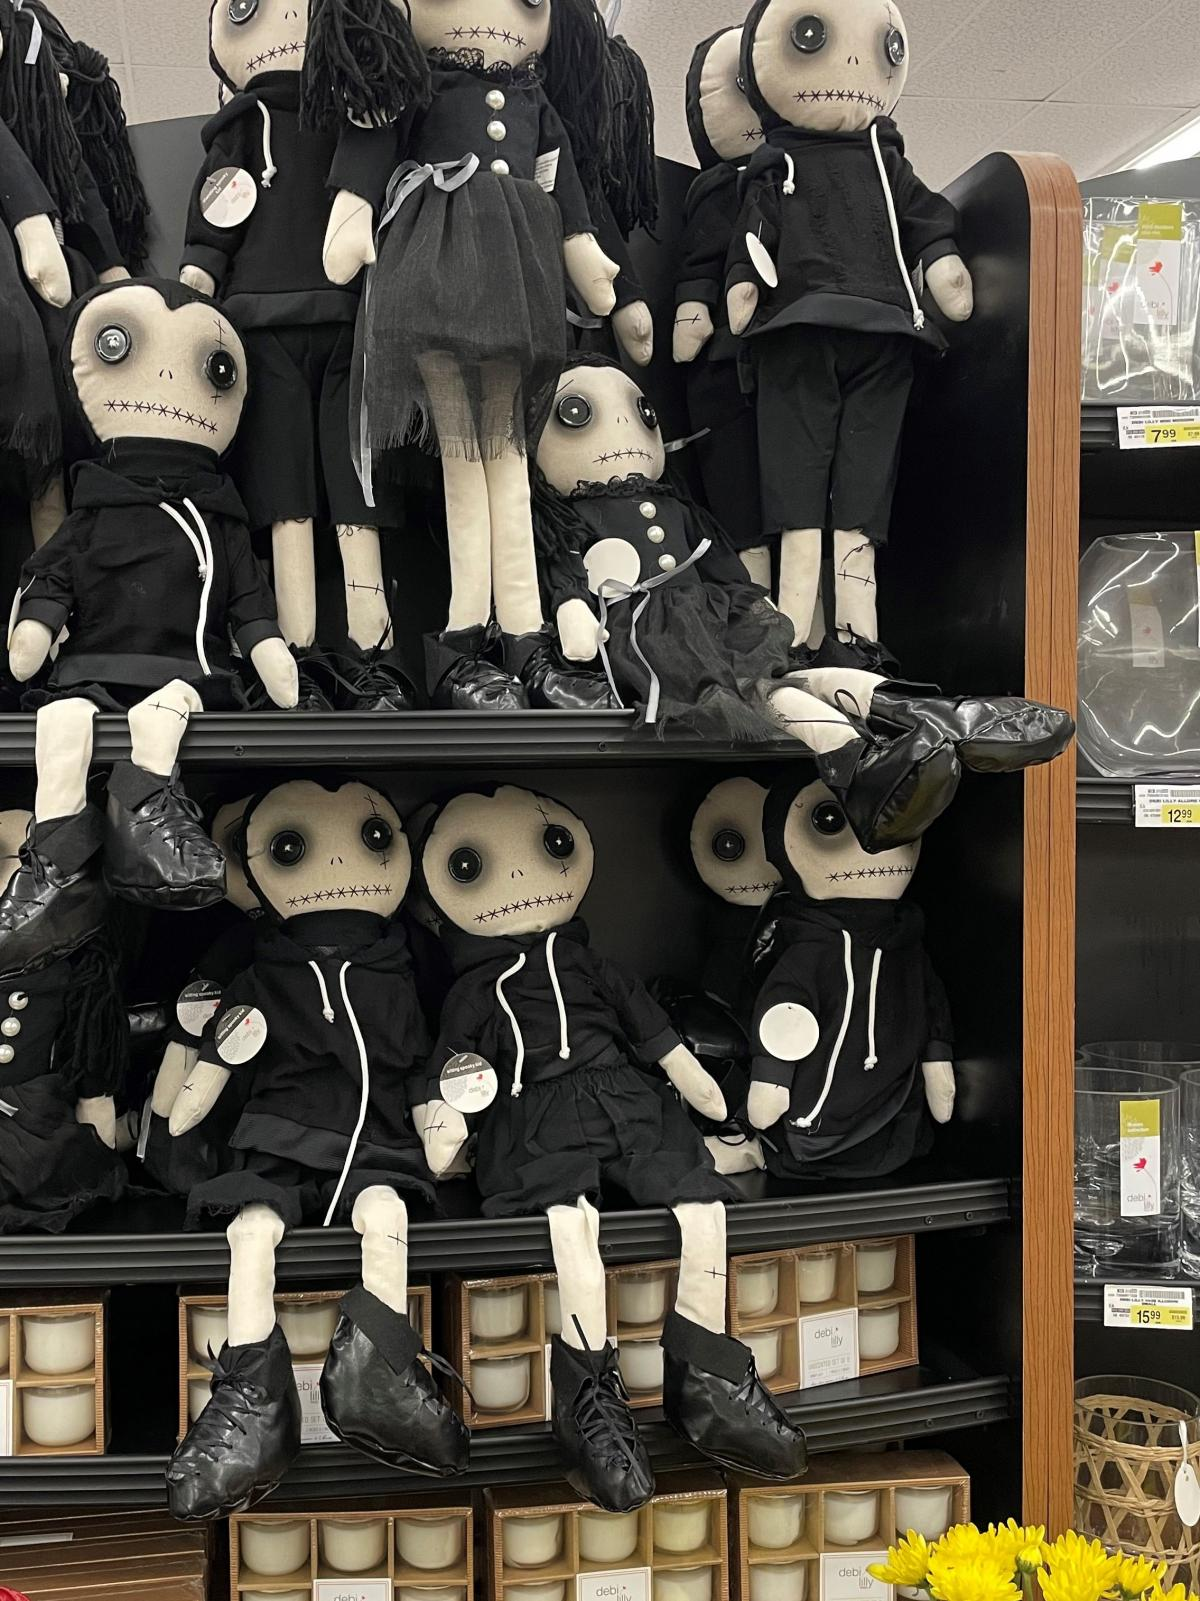 A shelf full of Goth dolls for sale at an Albertsons grocery store in Los Angeles.